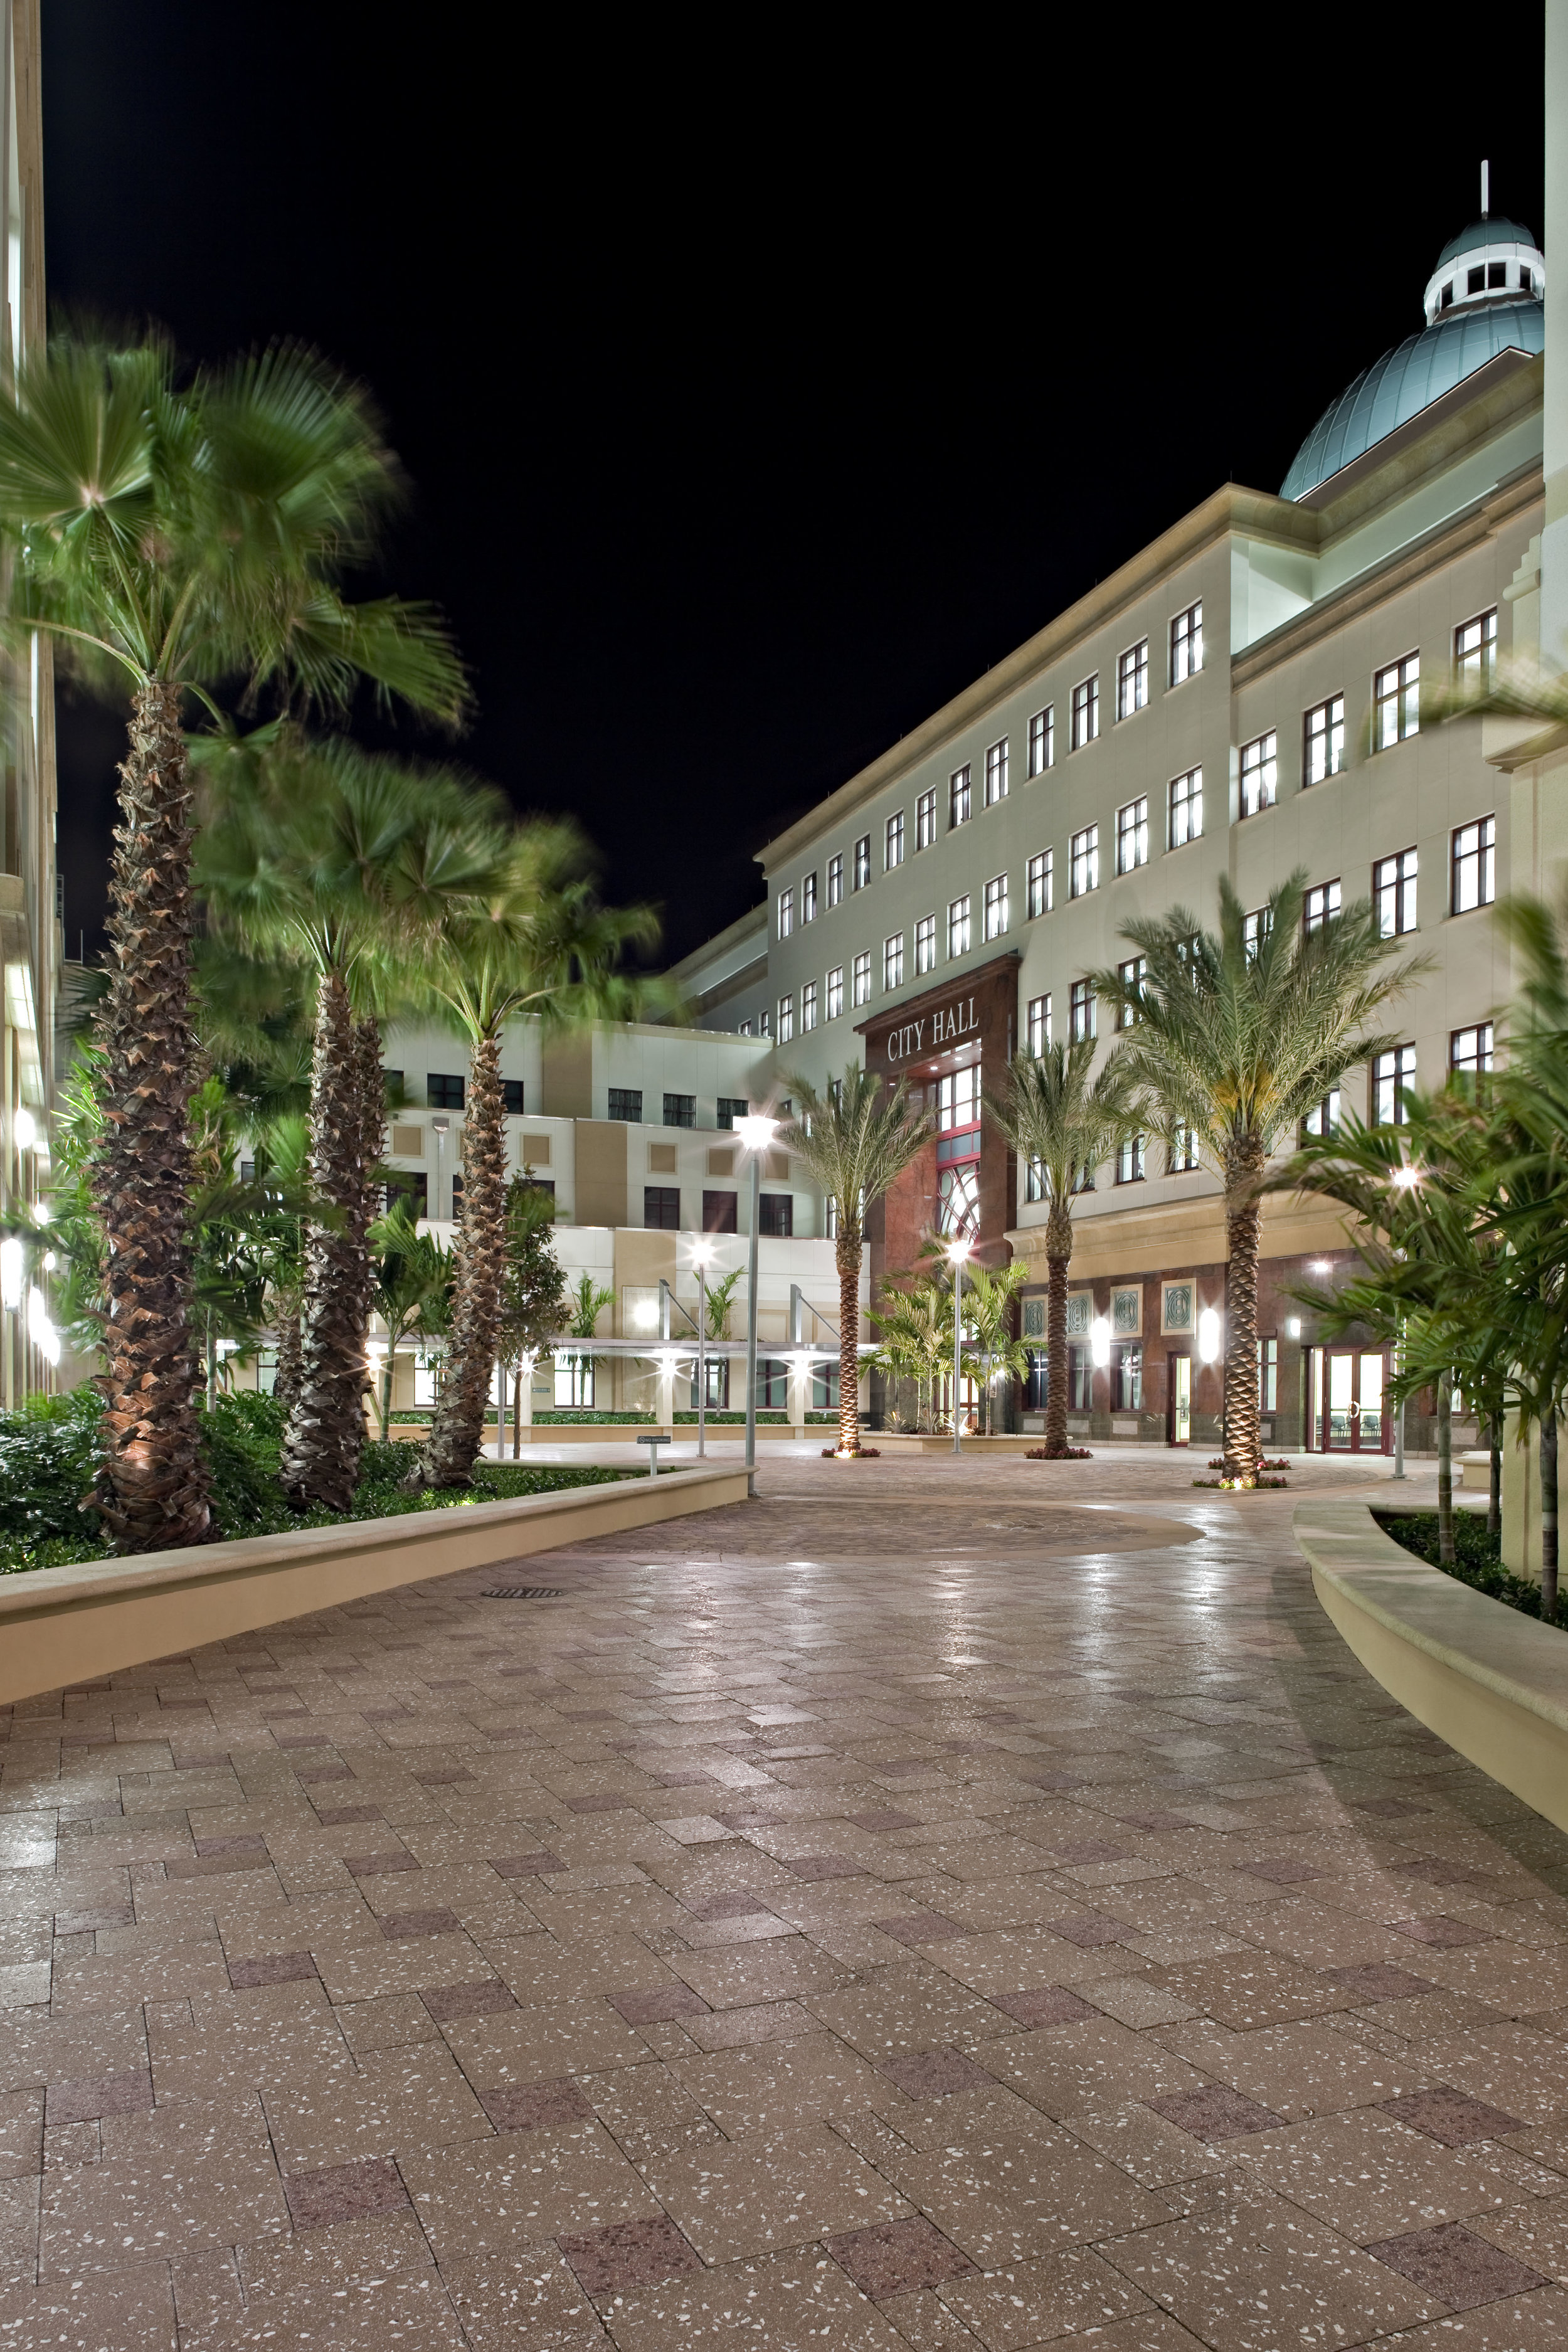 City Center Night Courtyard.jpg